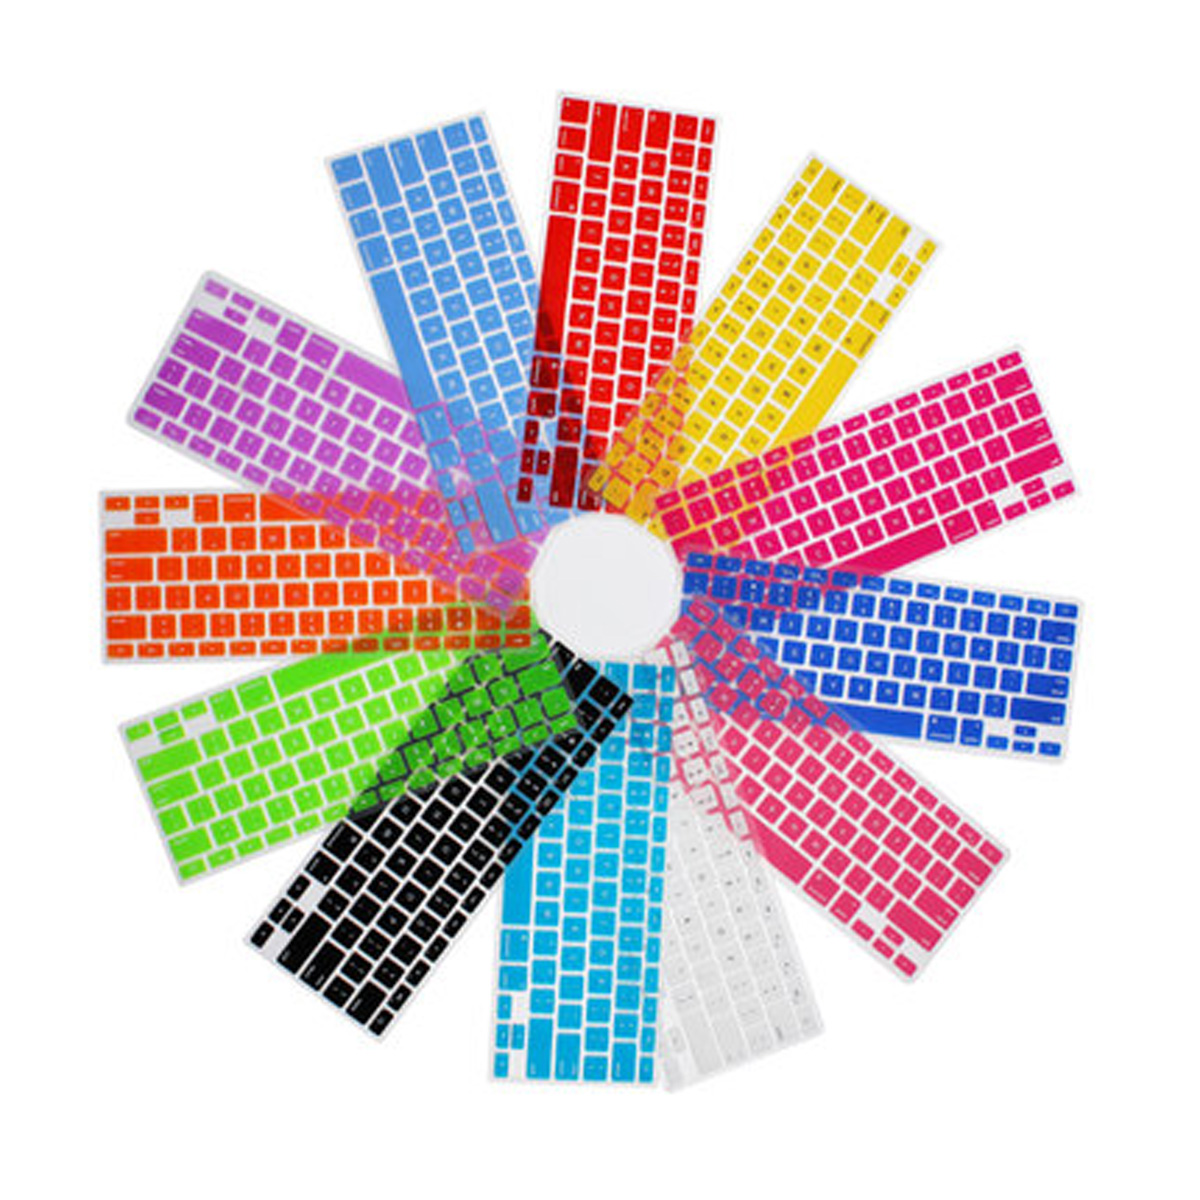 "Layout UE French / France AZERTY Adesivo colorato in silicone con protezione Keyboard Skin per 13 ""15"" MacBook Pro retina air / Imac G6"